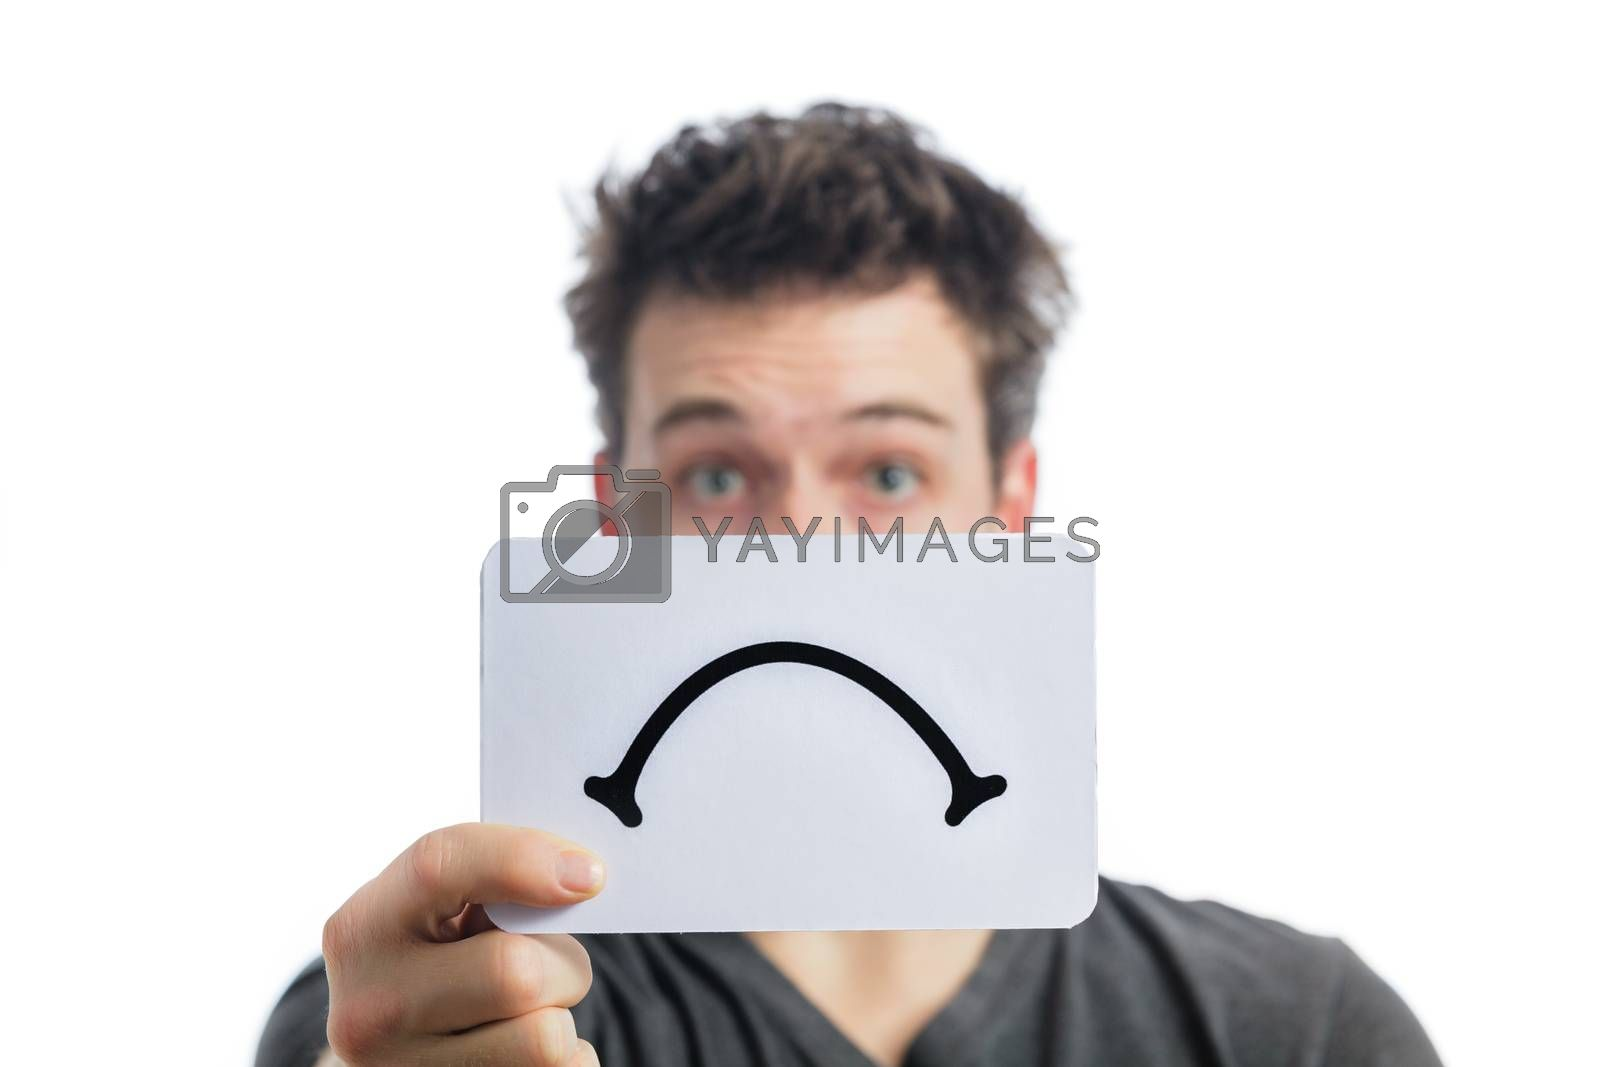 Unhappy Portrait of a Man Holding a Sad Mood Board Isolated on White Background